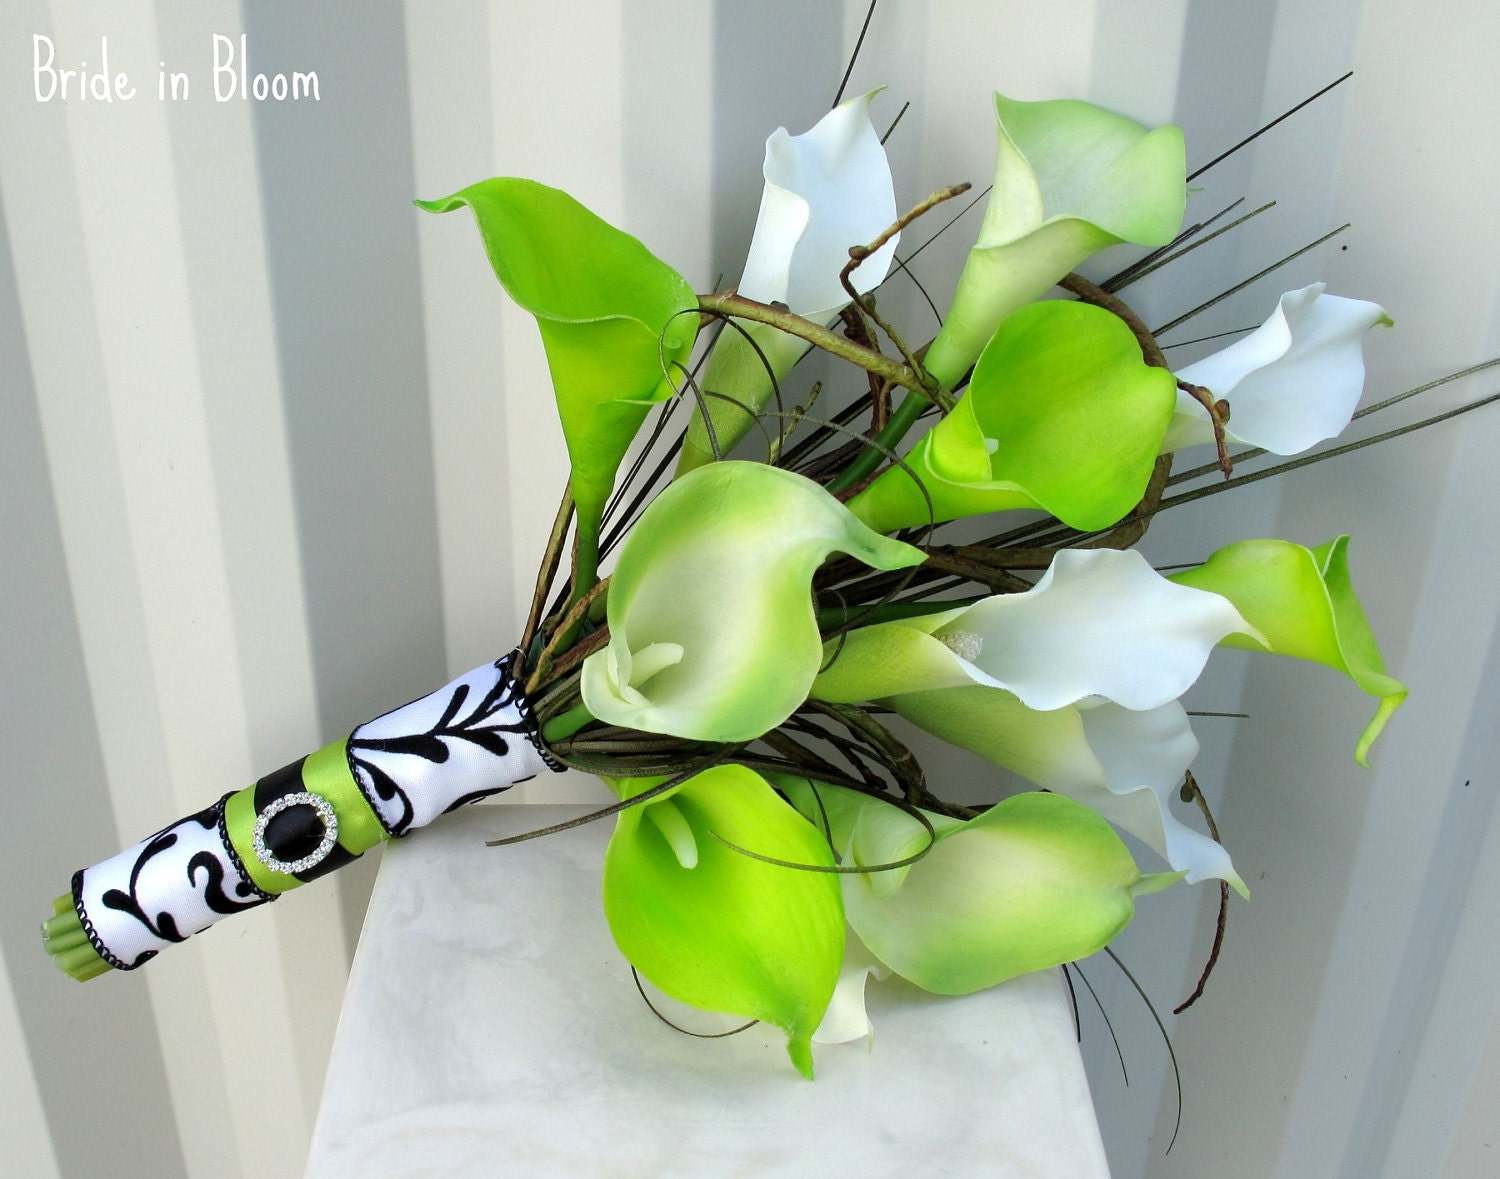 Lime Green Bridal Flowers : Southern blue celebrations green bridal bouquet ideas